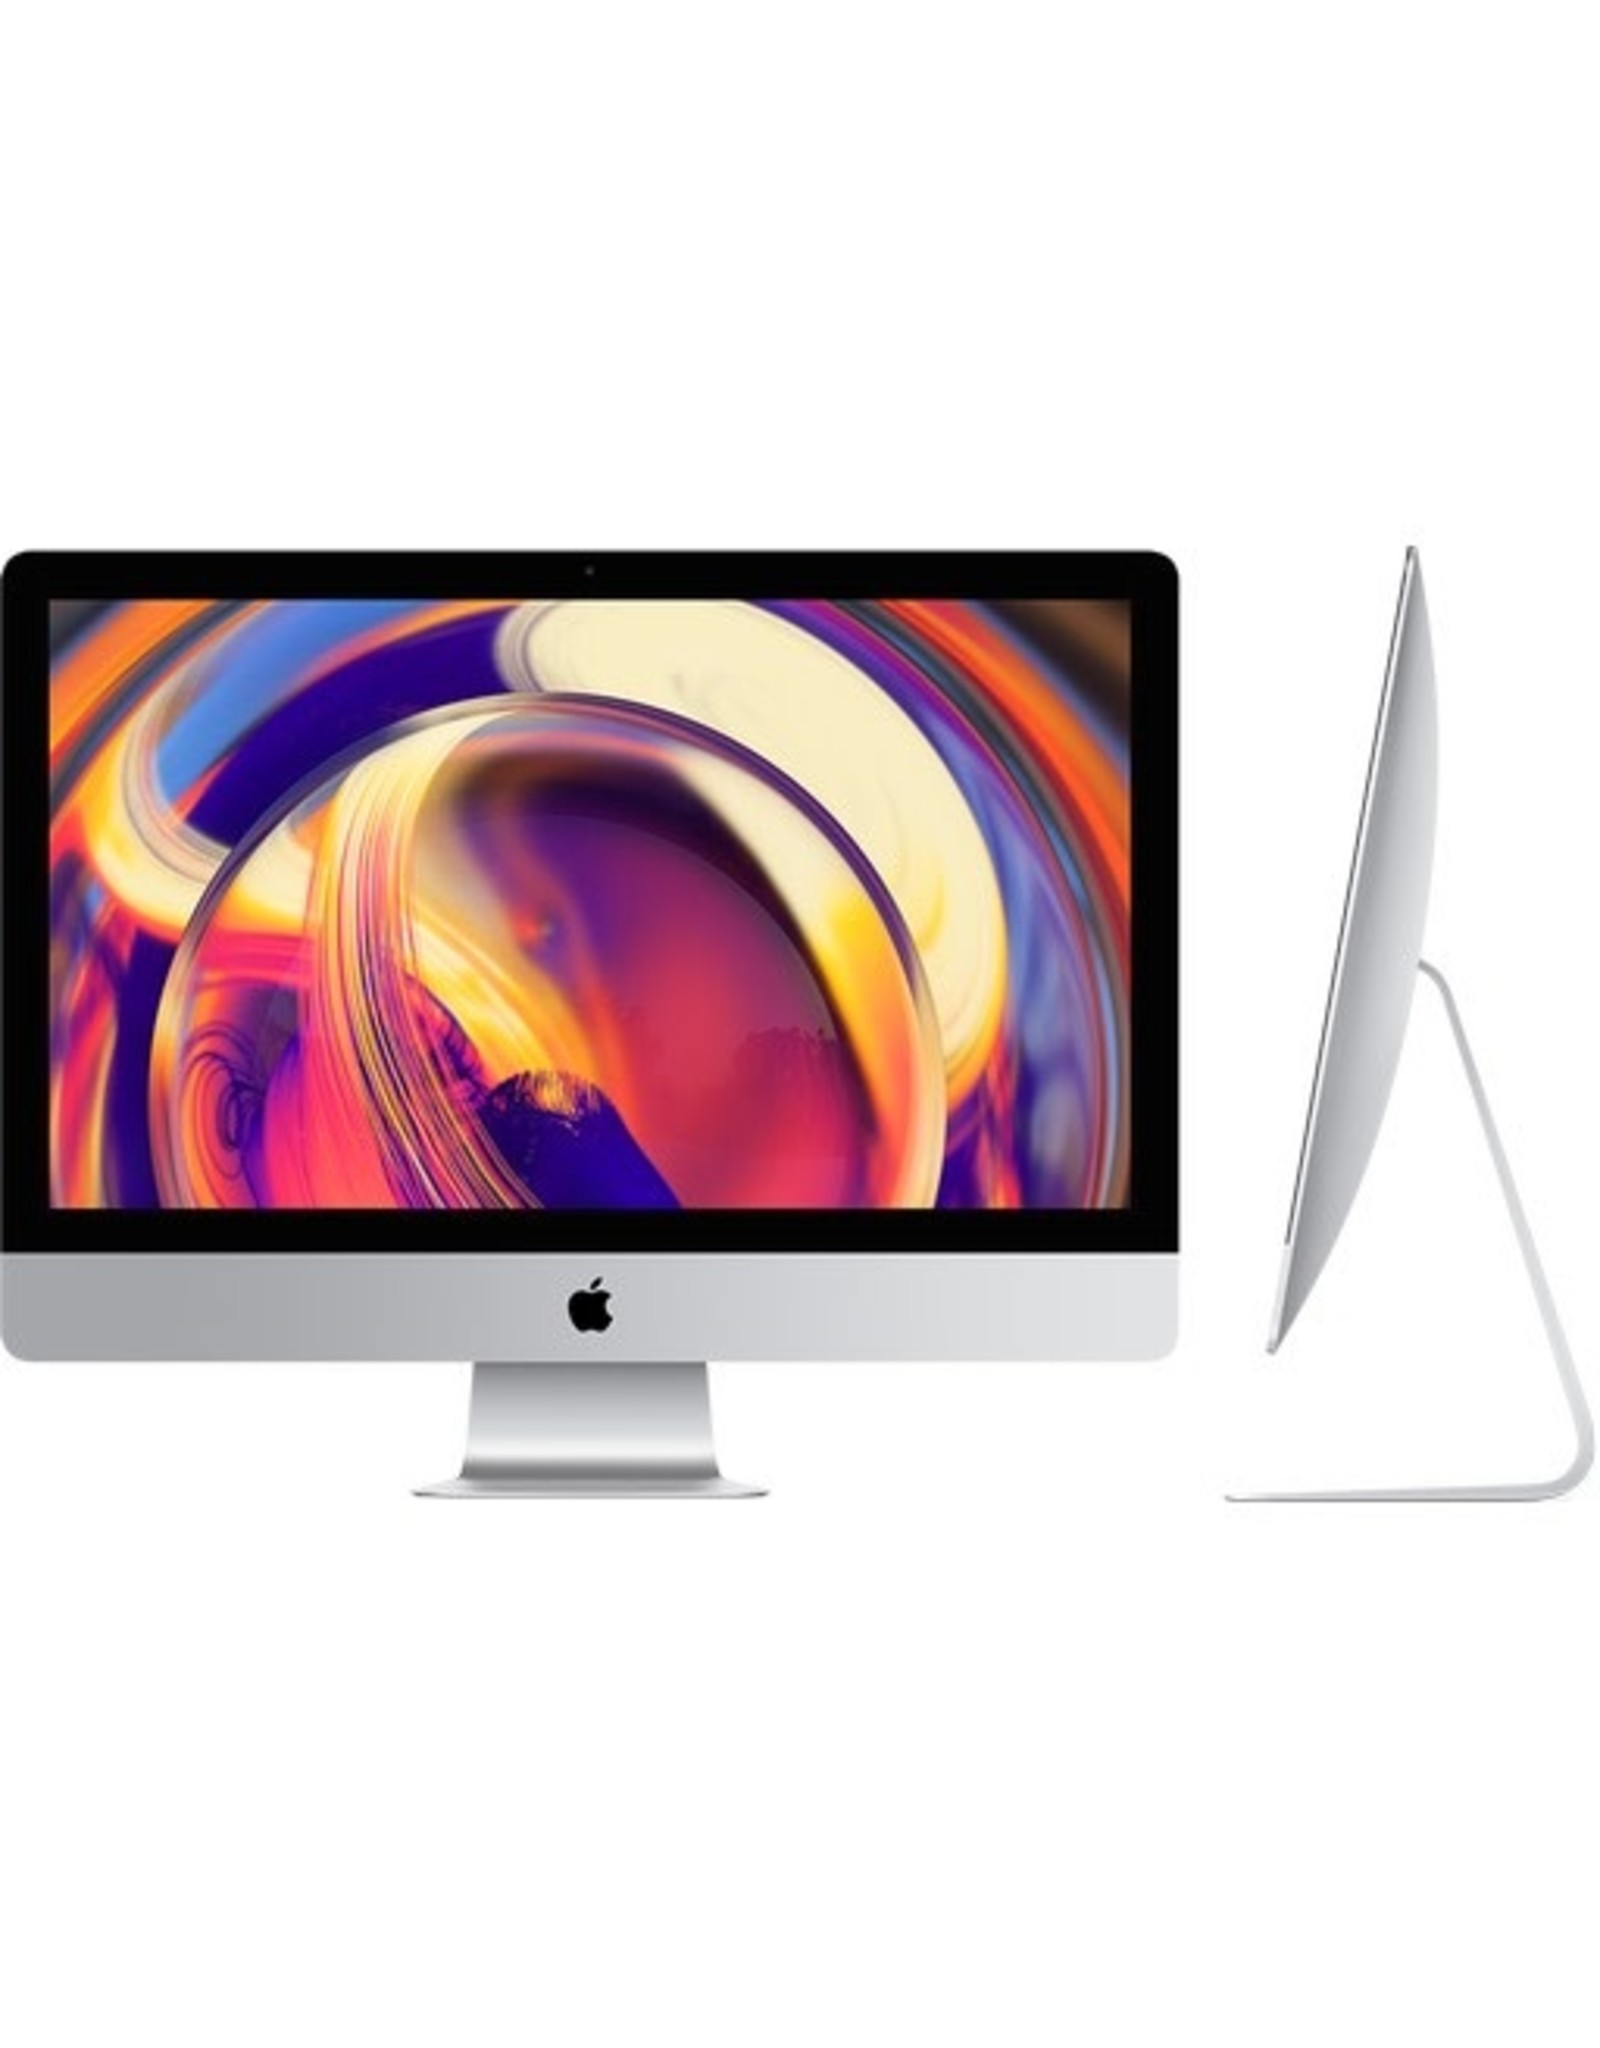 "Apple (Standard) iMac 27"" - Processor: (065-C7GL) - 3.0GHz 6-core 8th-generation Intel Core i5 processor, Turbo Boost up to 4.1GHz,Memory: (065-C6WK) - 8GB 2666MHz DDR4 memory,Storage: (065-C6WP) - 1TB Fusion Drive storage,Graphics: (065-C7GX) - Radeon Pro 570X"